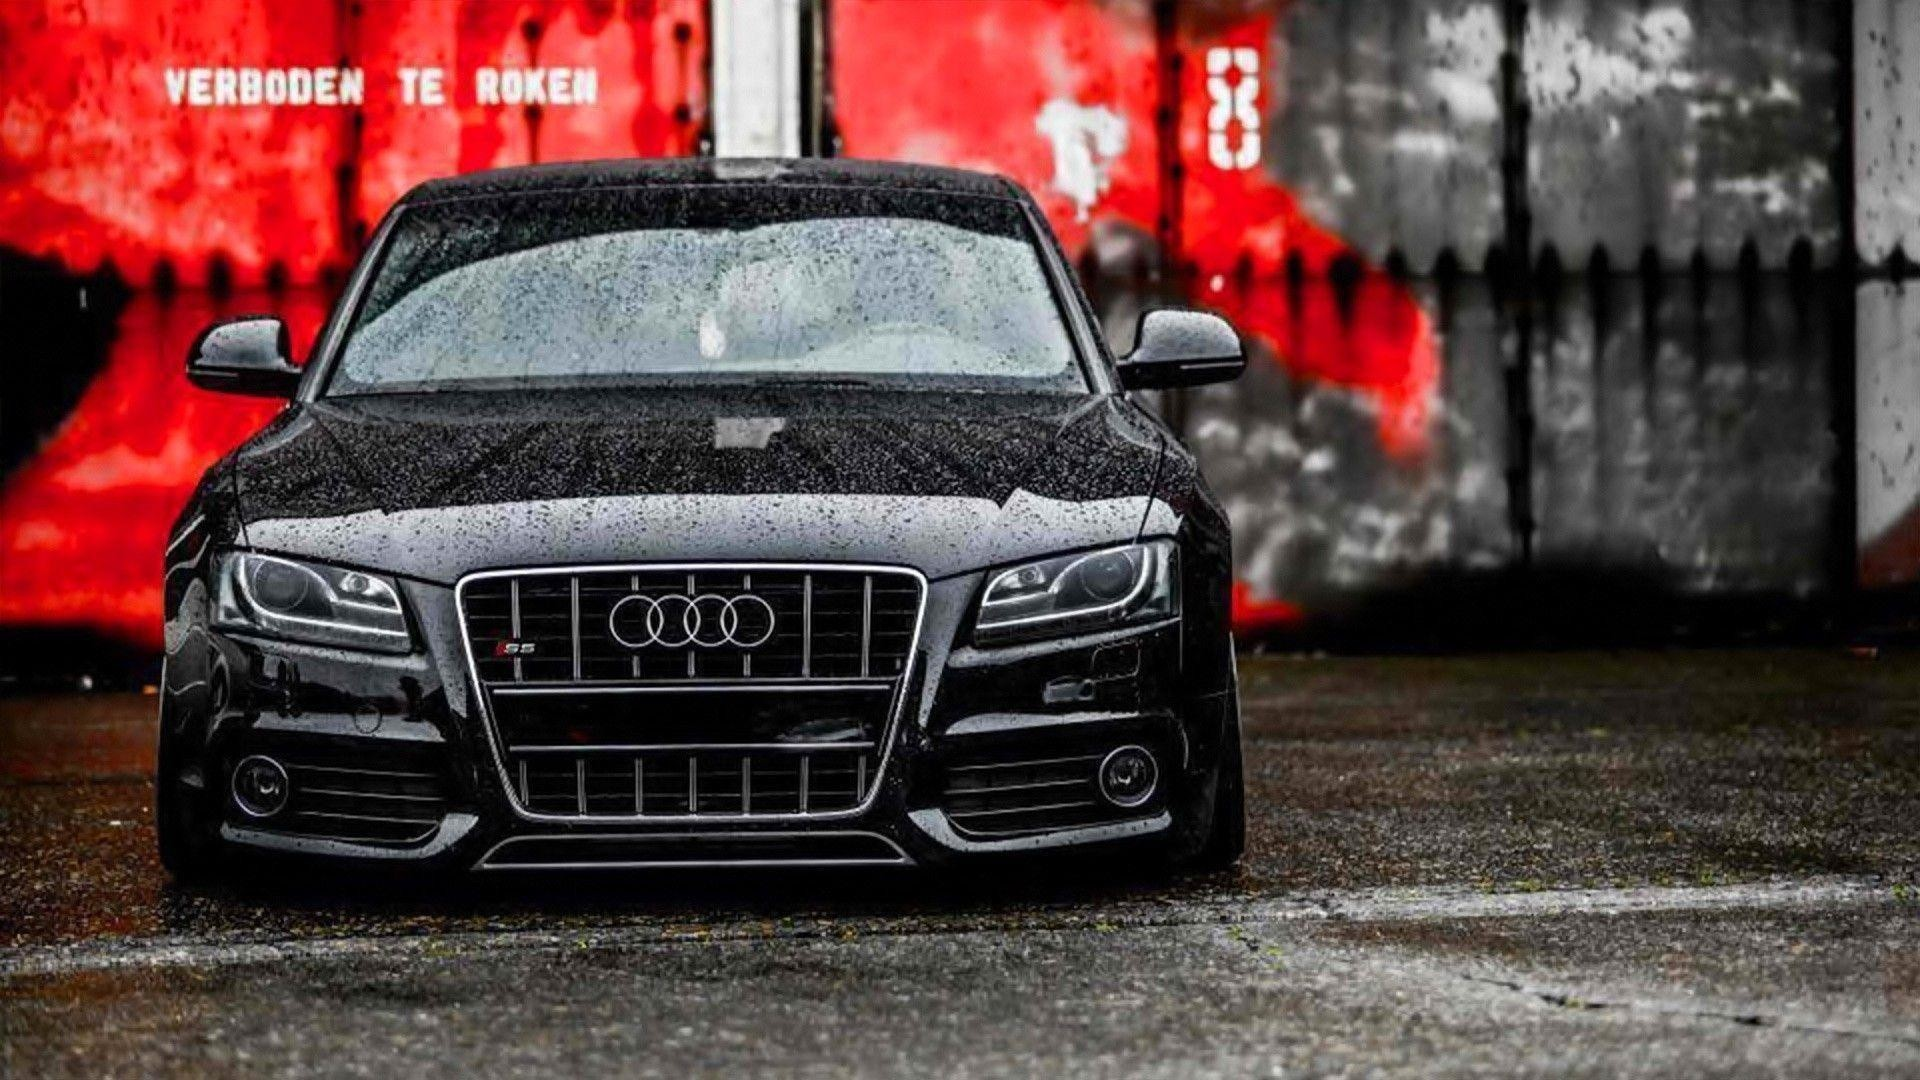 Res: 1920x1080, 11 Audi S5 Wallpapers | Audi S5 Backgrounds